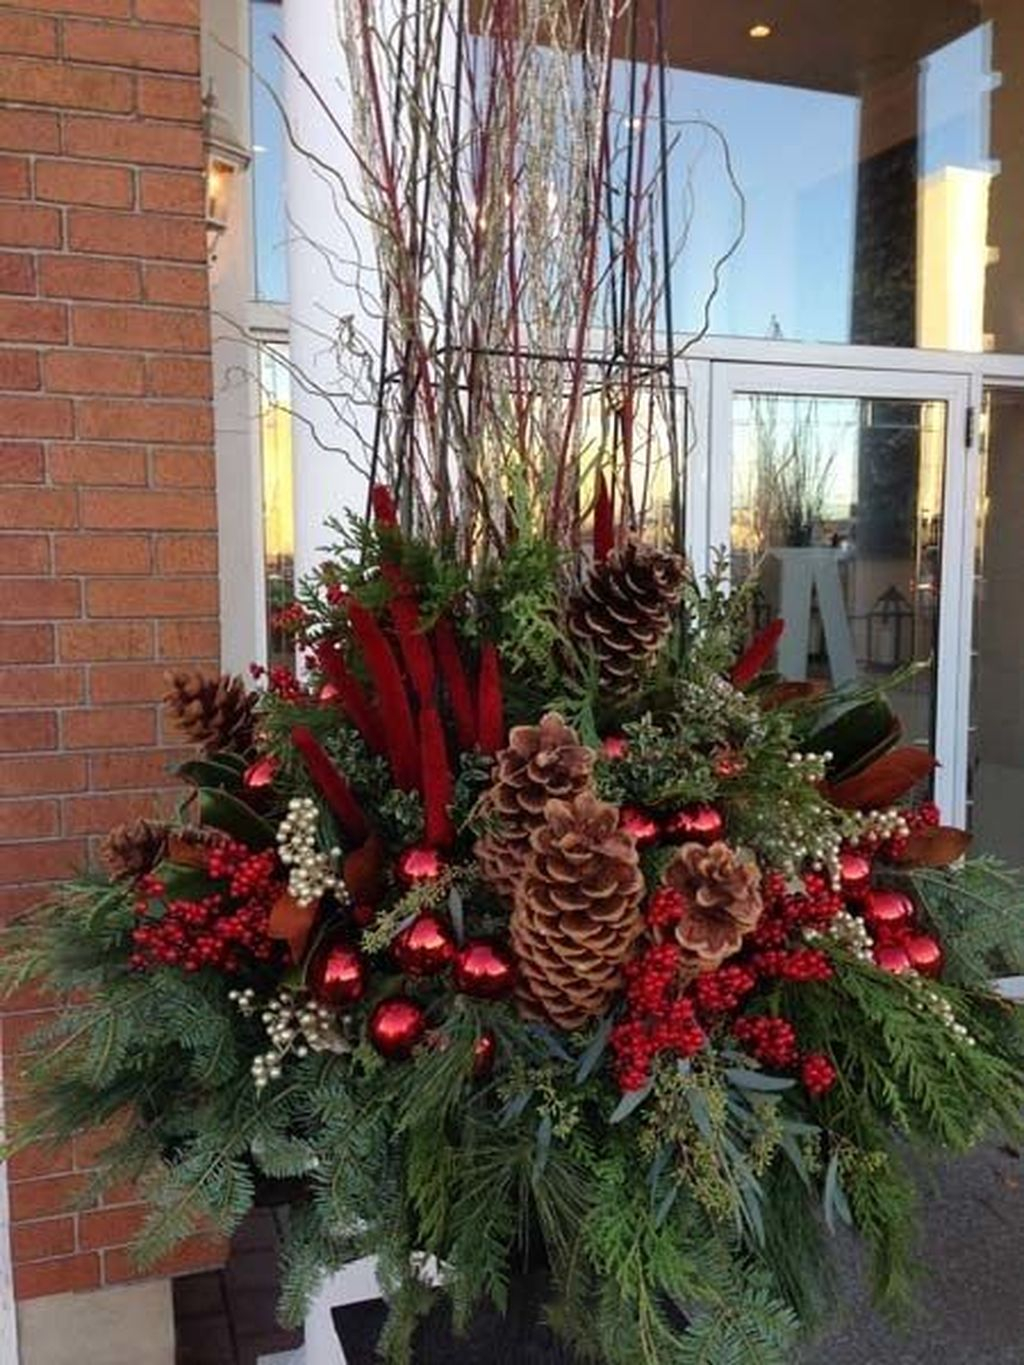 Marvelous Outdoor Holiday Planter Ideas To Beauty Porch Décor 15